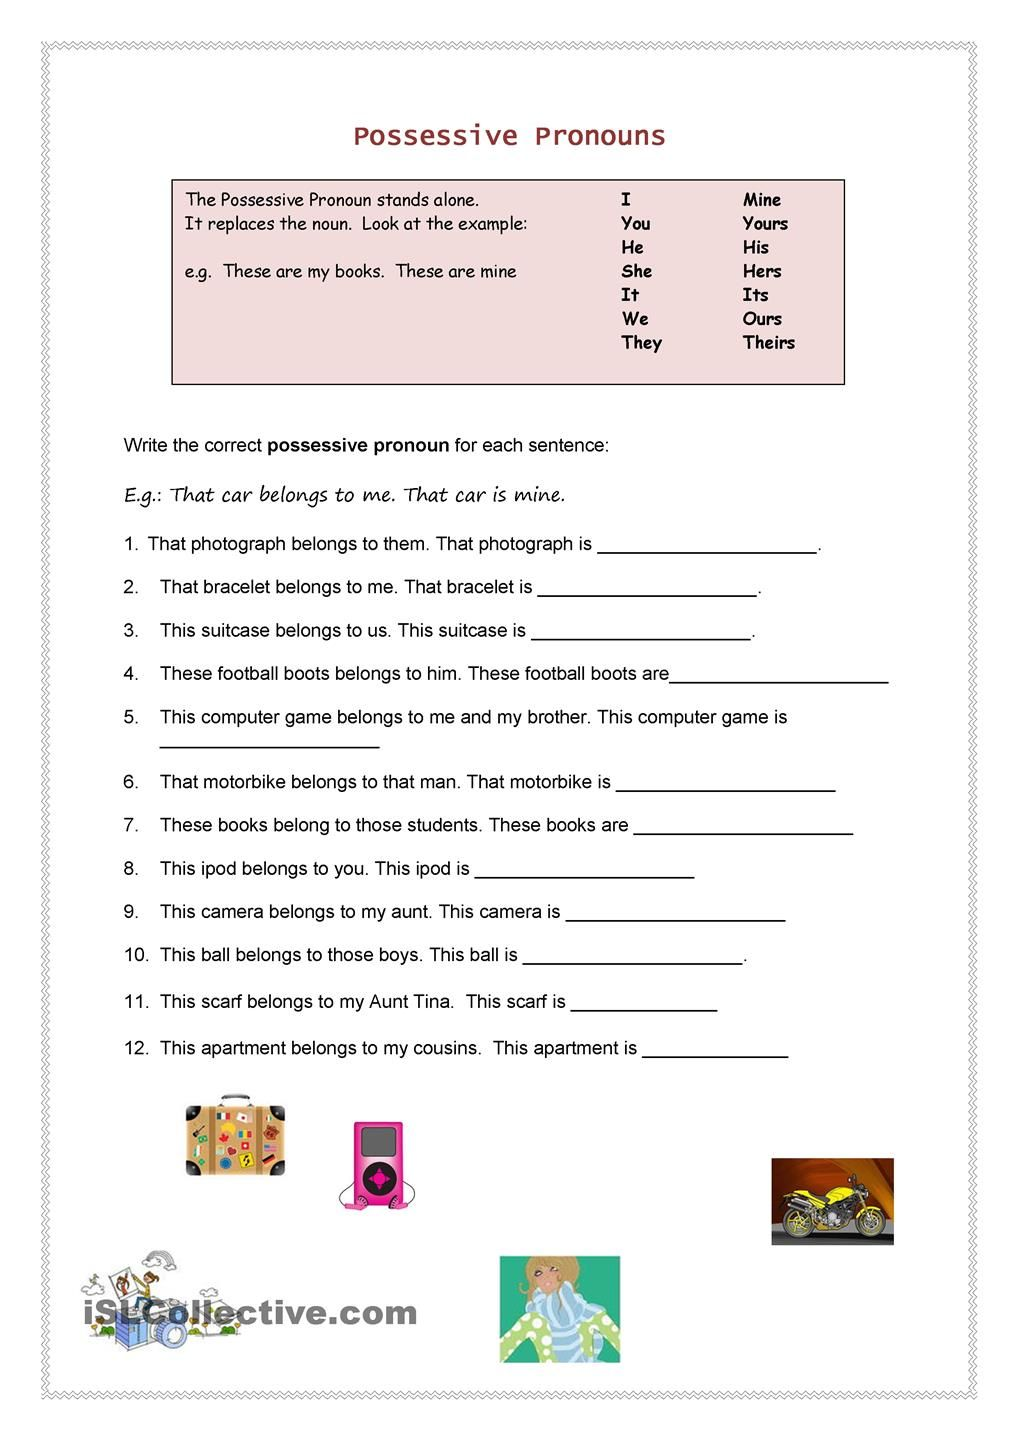 possessive pronouns english grammar english grammar worksheets pronoun worksheets english. Black Bedroom Furniture Sets. Home Design Ideas